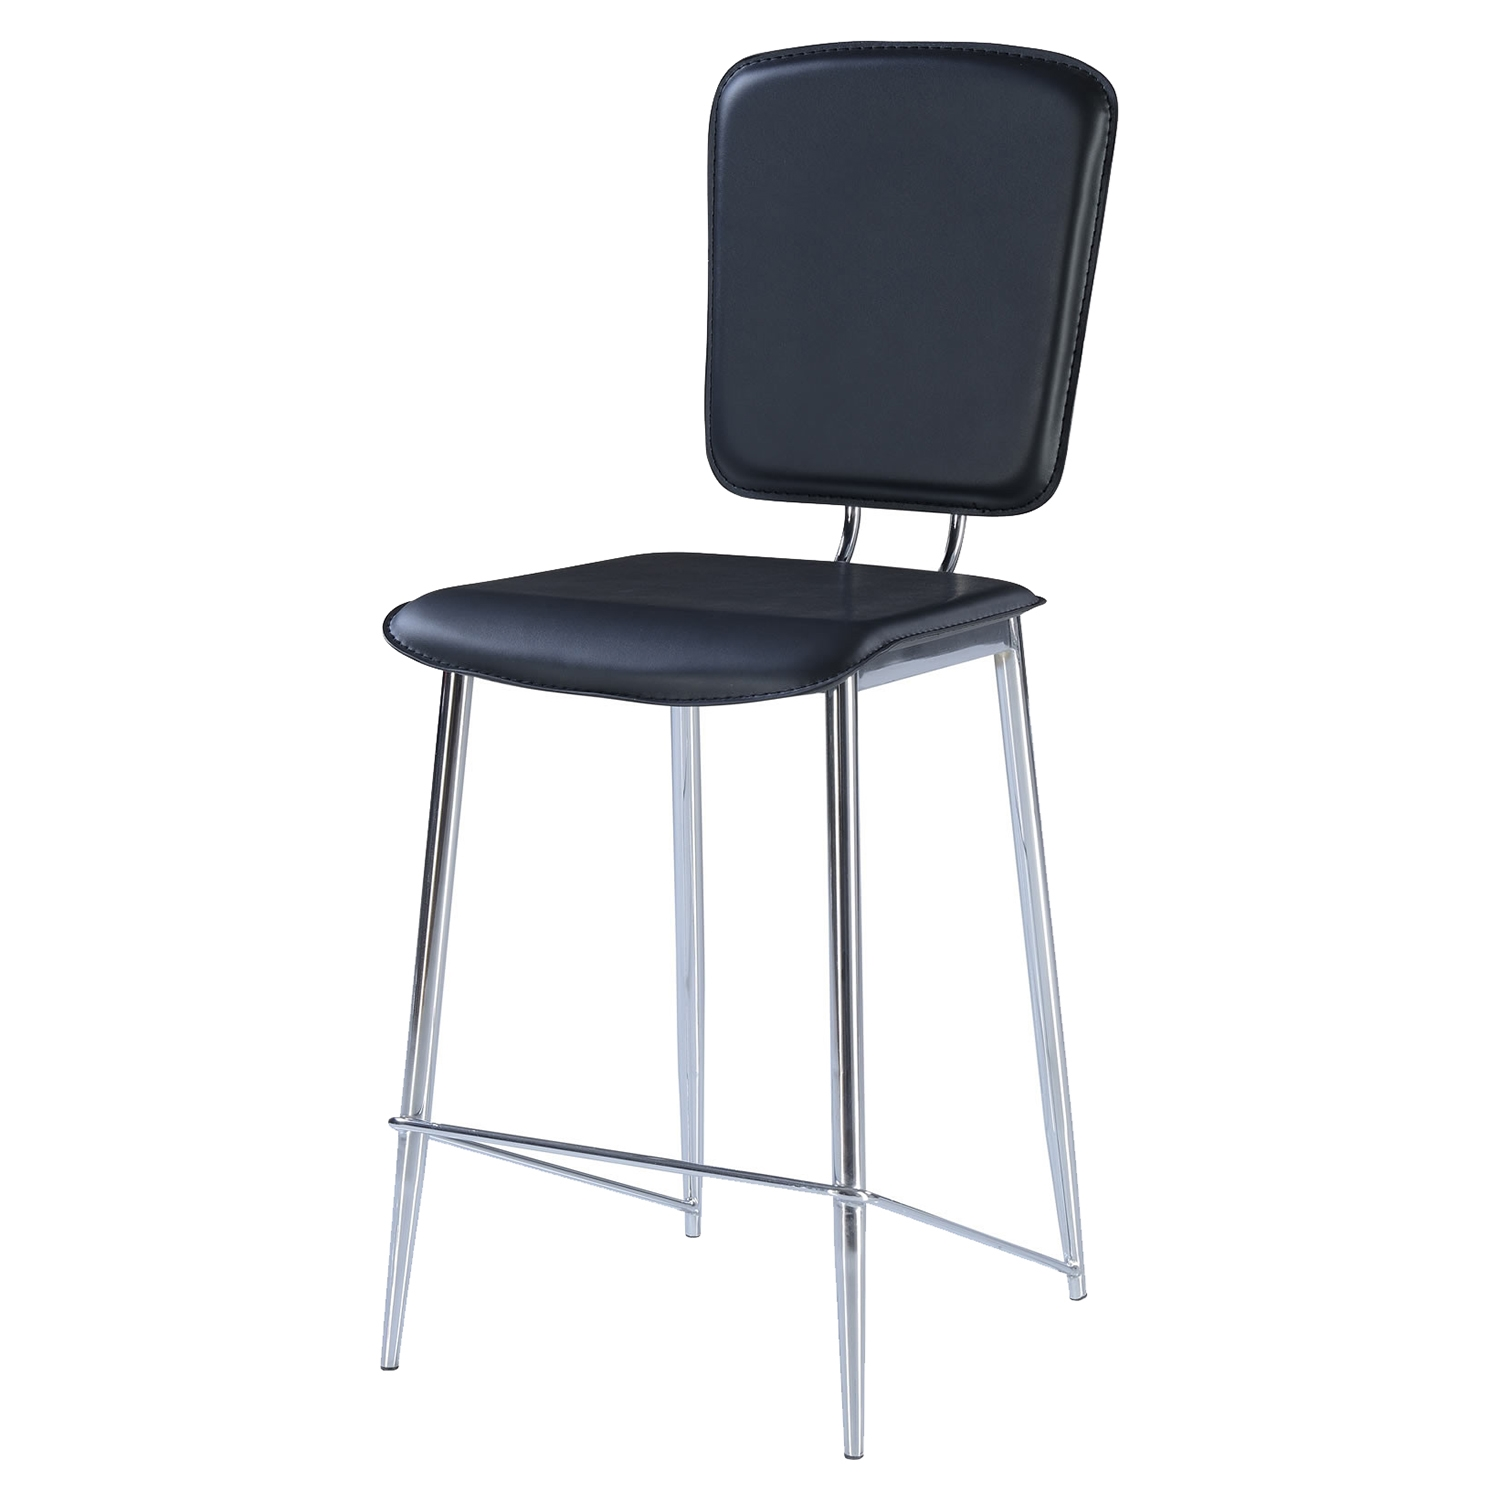 Ariana Bar Stool - Chrome/Black